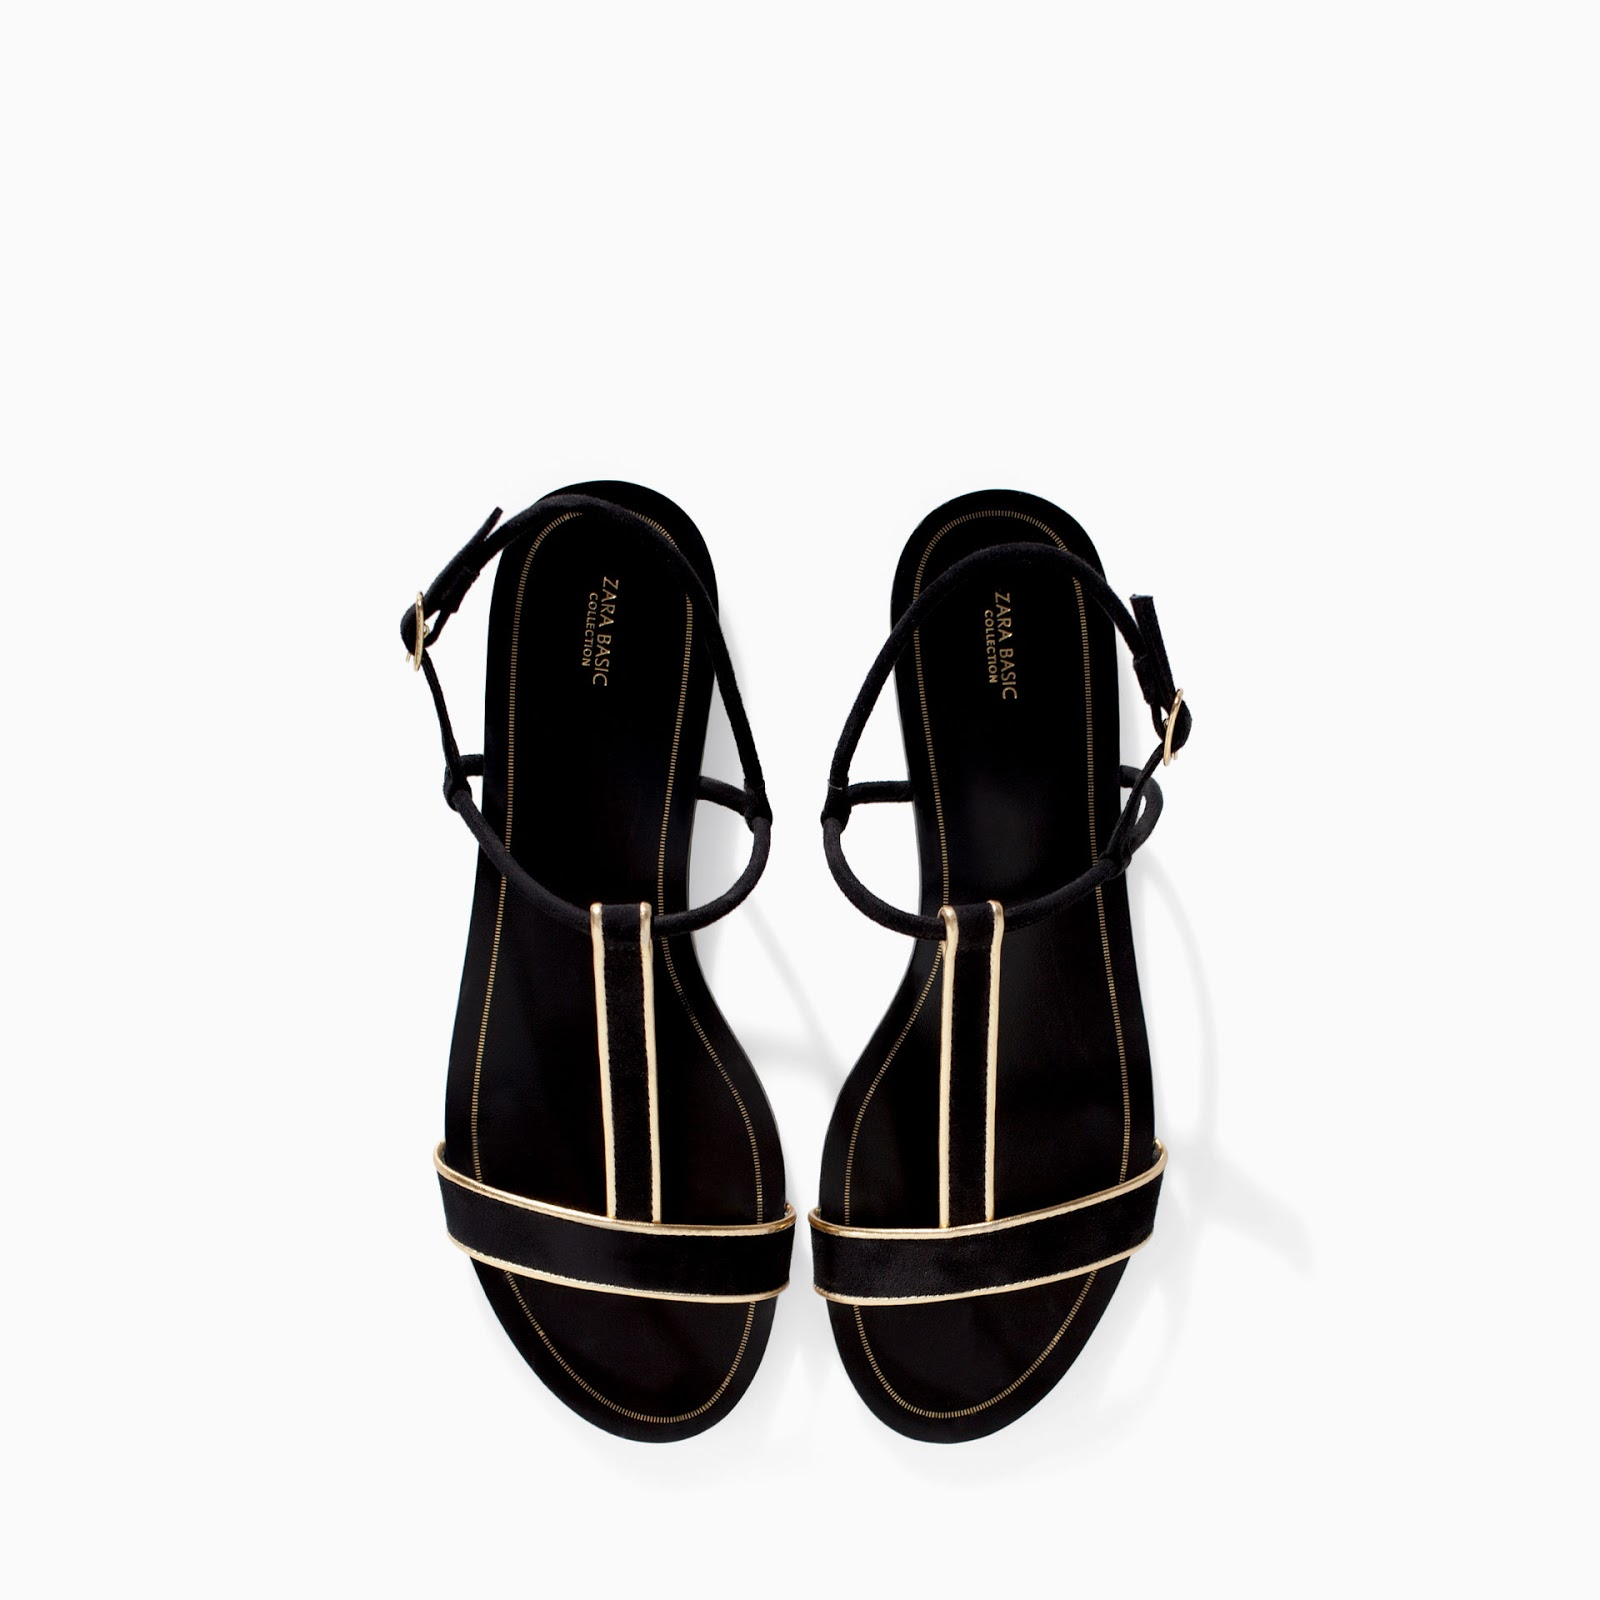 http://www.zara.com/uk/en/collection-aw14/woman/shoes/flat-sandals-with-metallic-edging-c269191p2151071.html